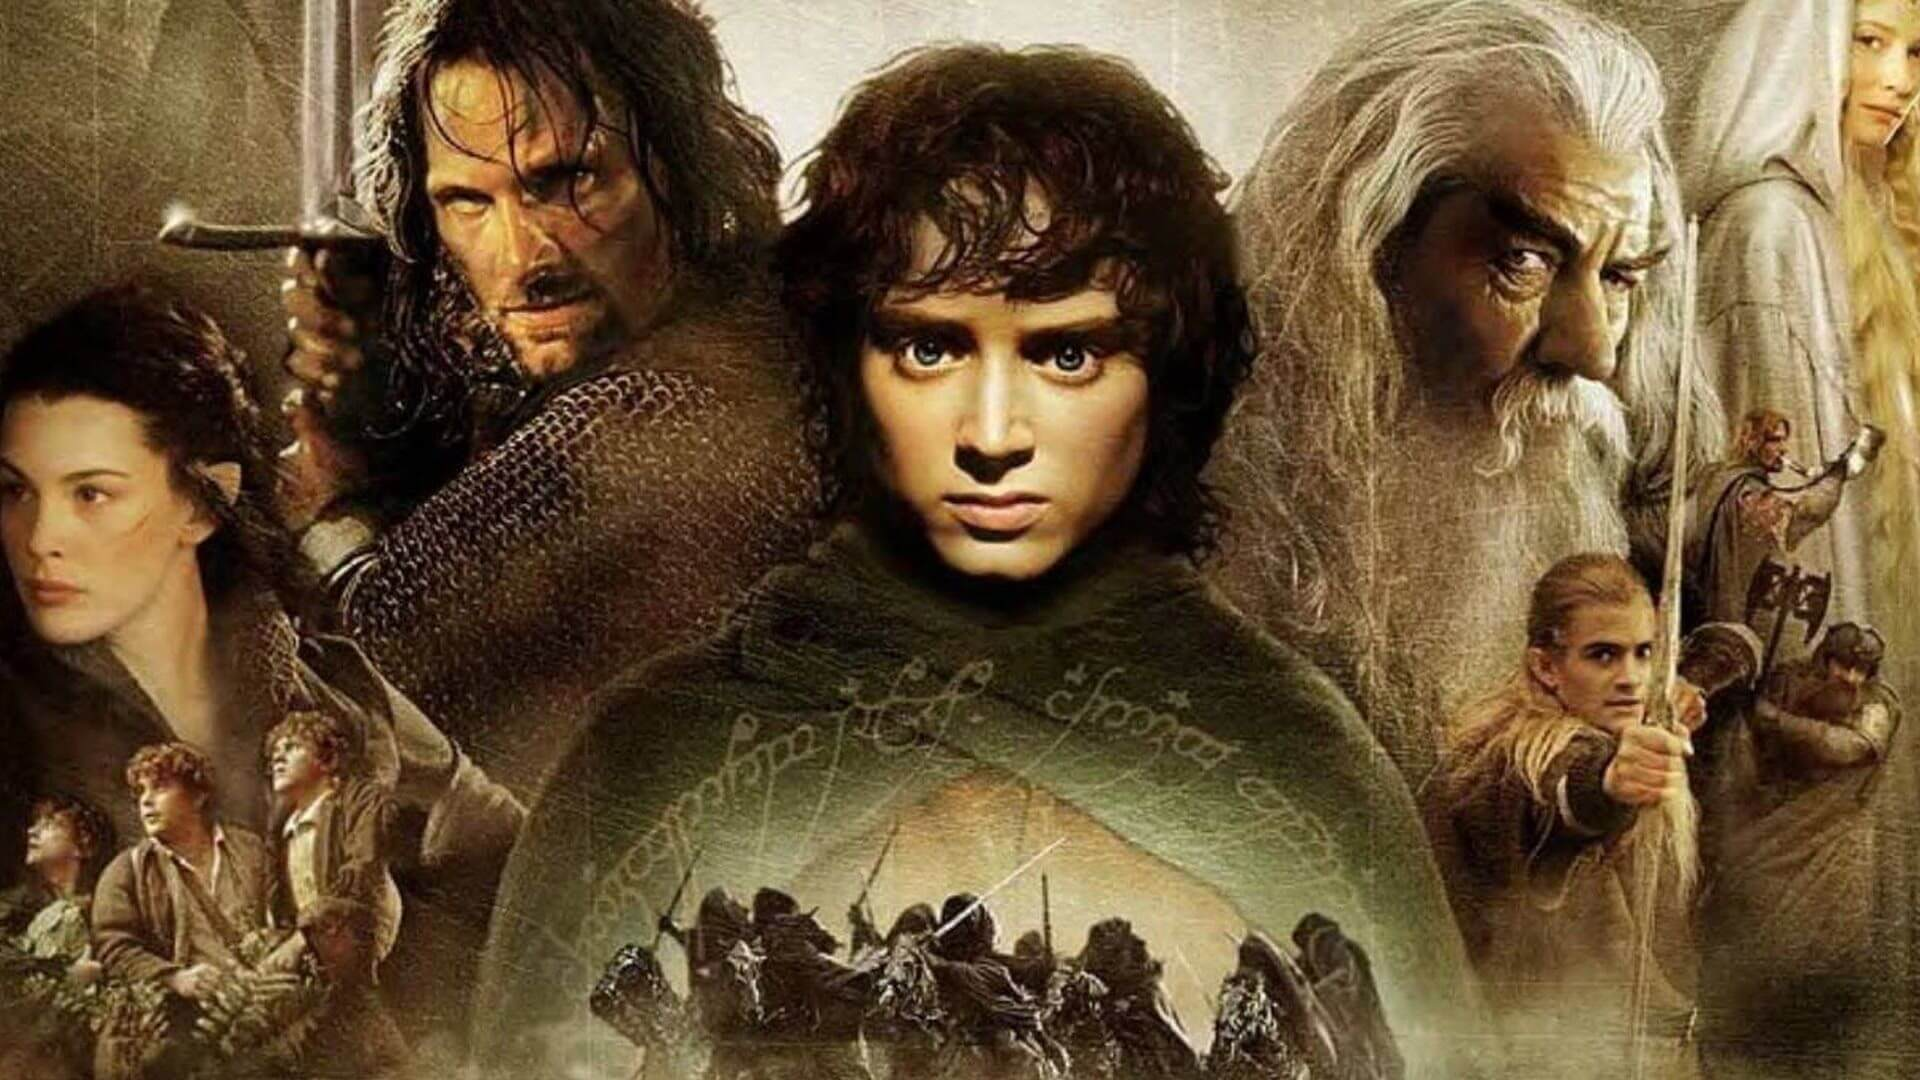 Should You Cancel Netflix Because Of Lord Of The Rings?